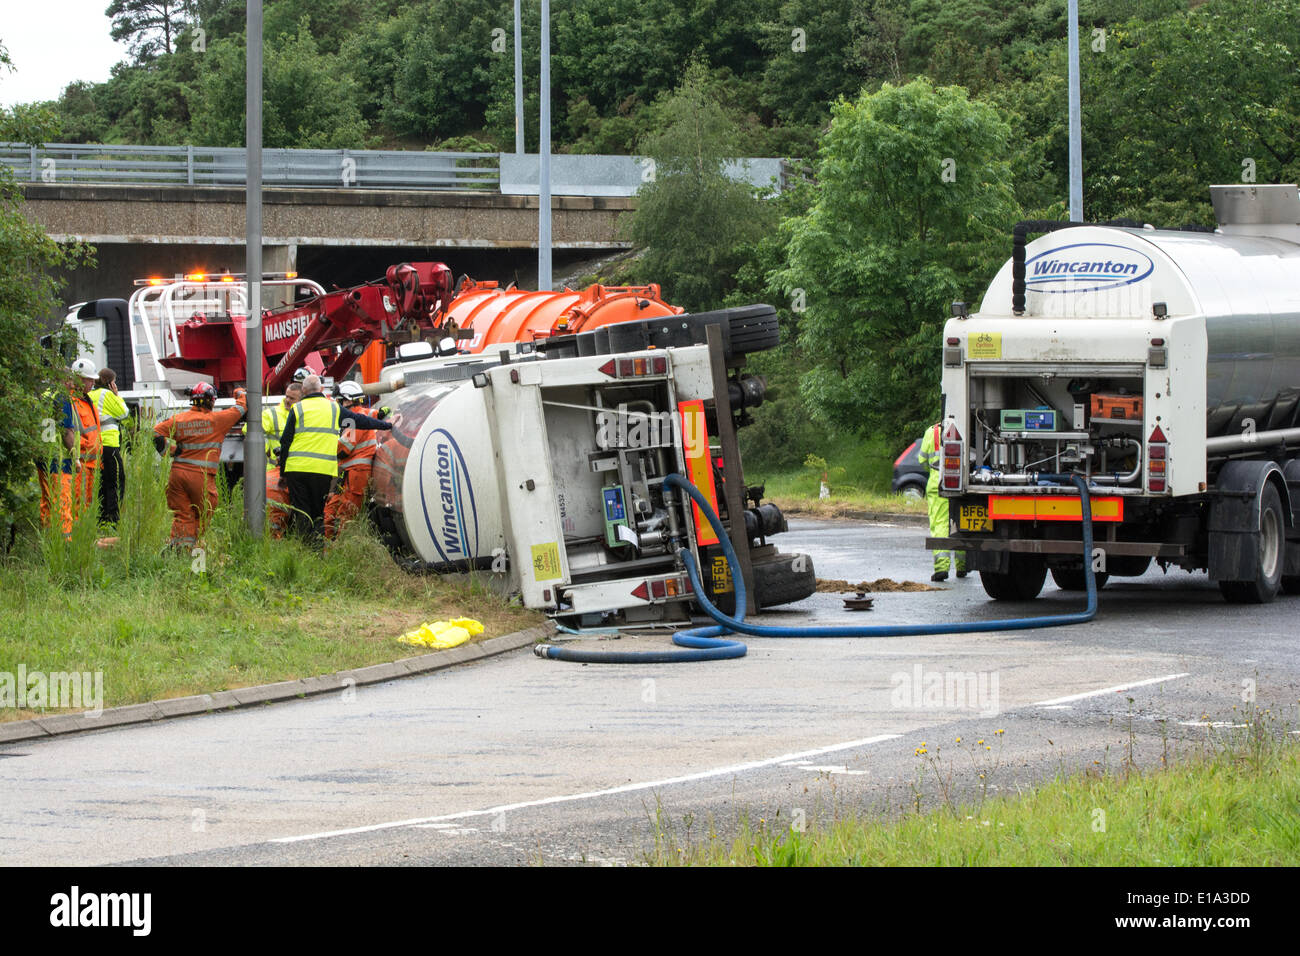 Motorway Incident Stock Photos & Motorway Incident Stock Images - Alamy